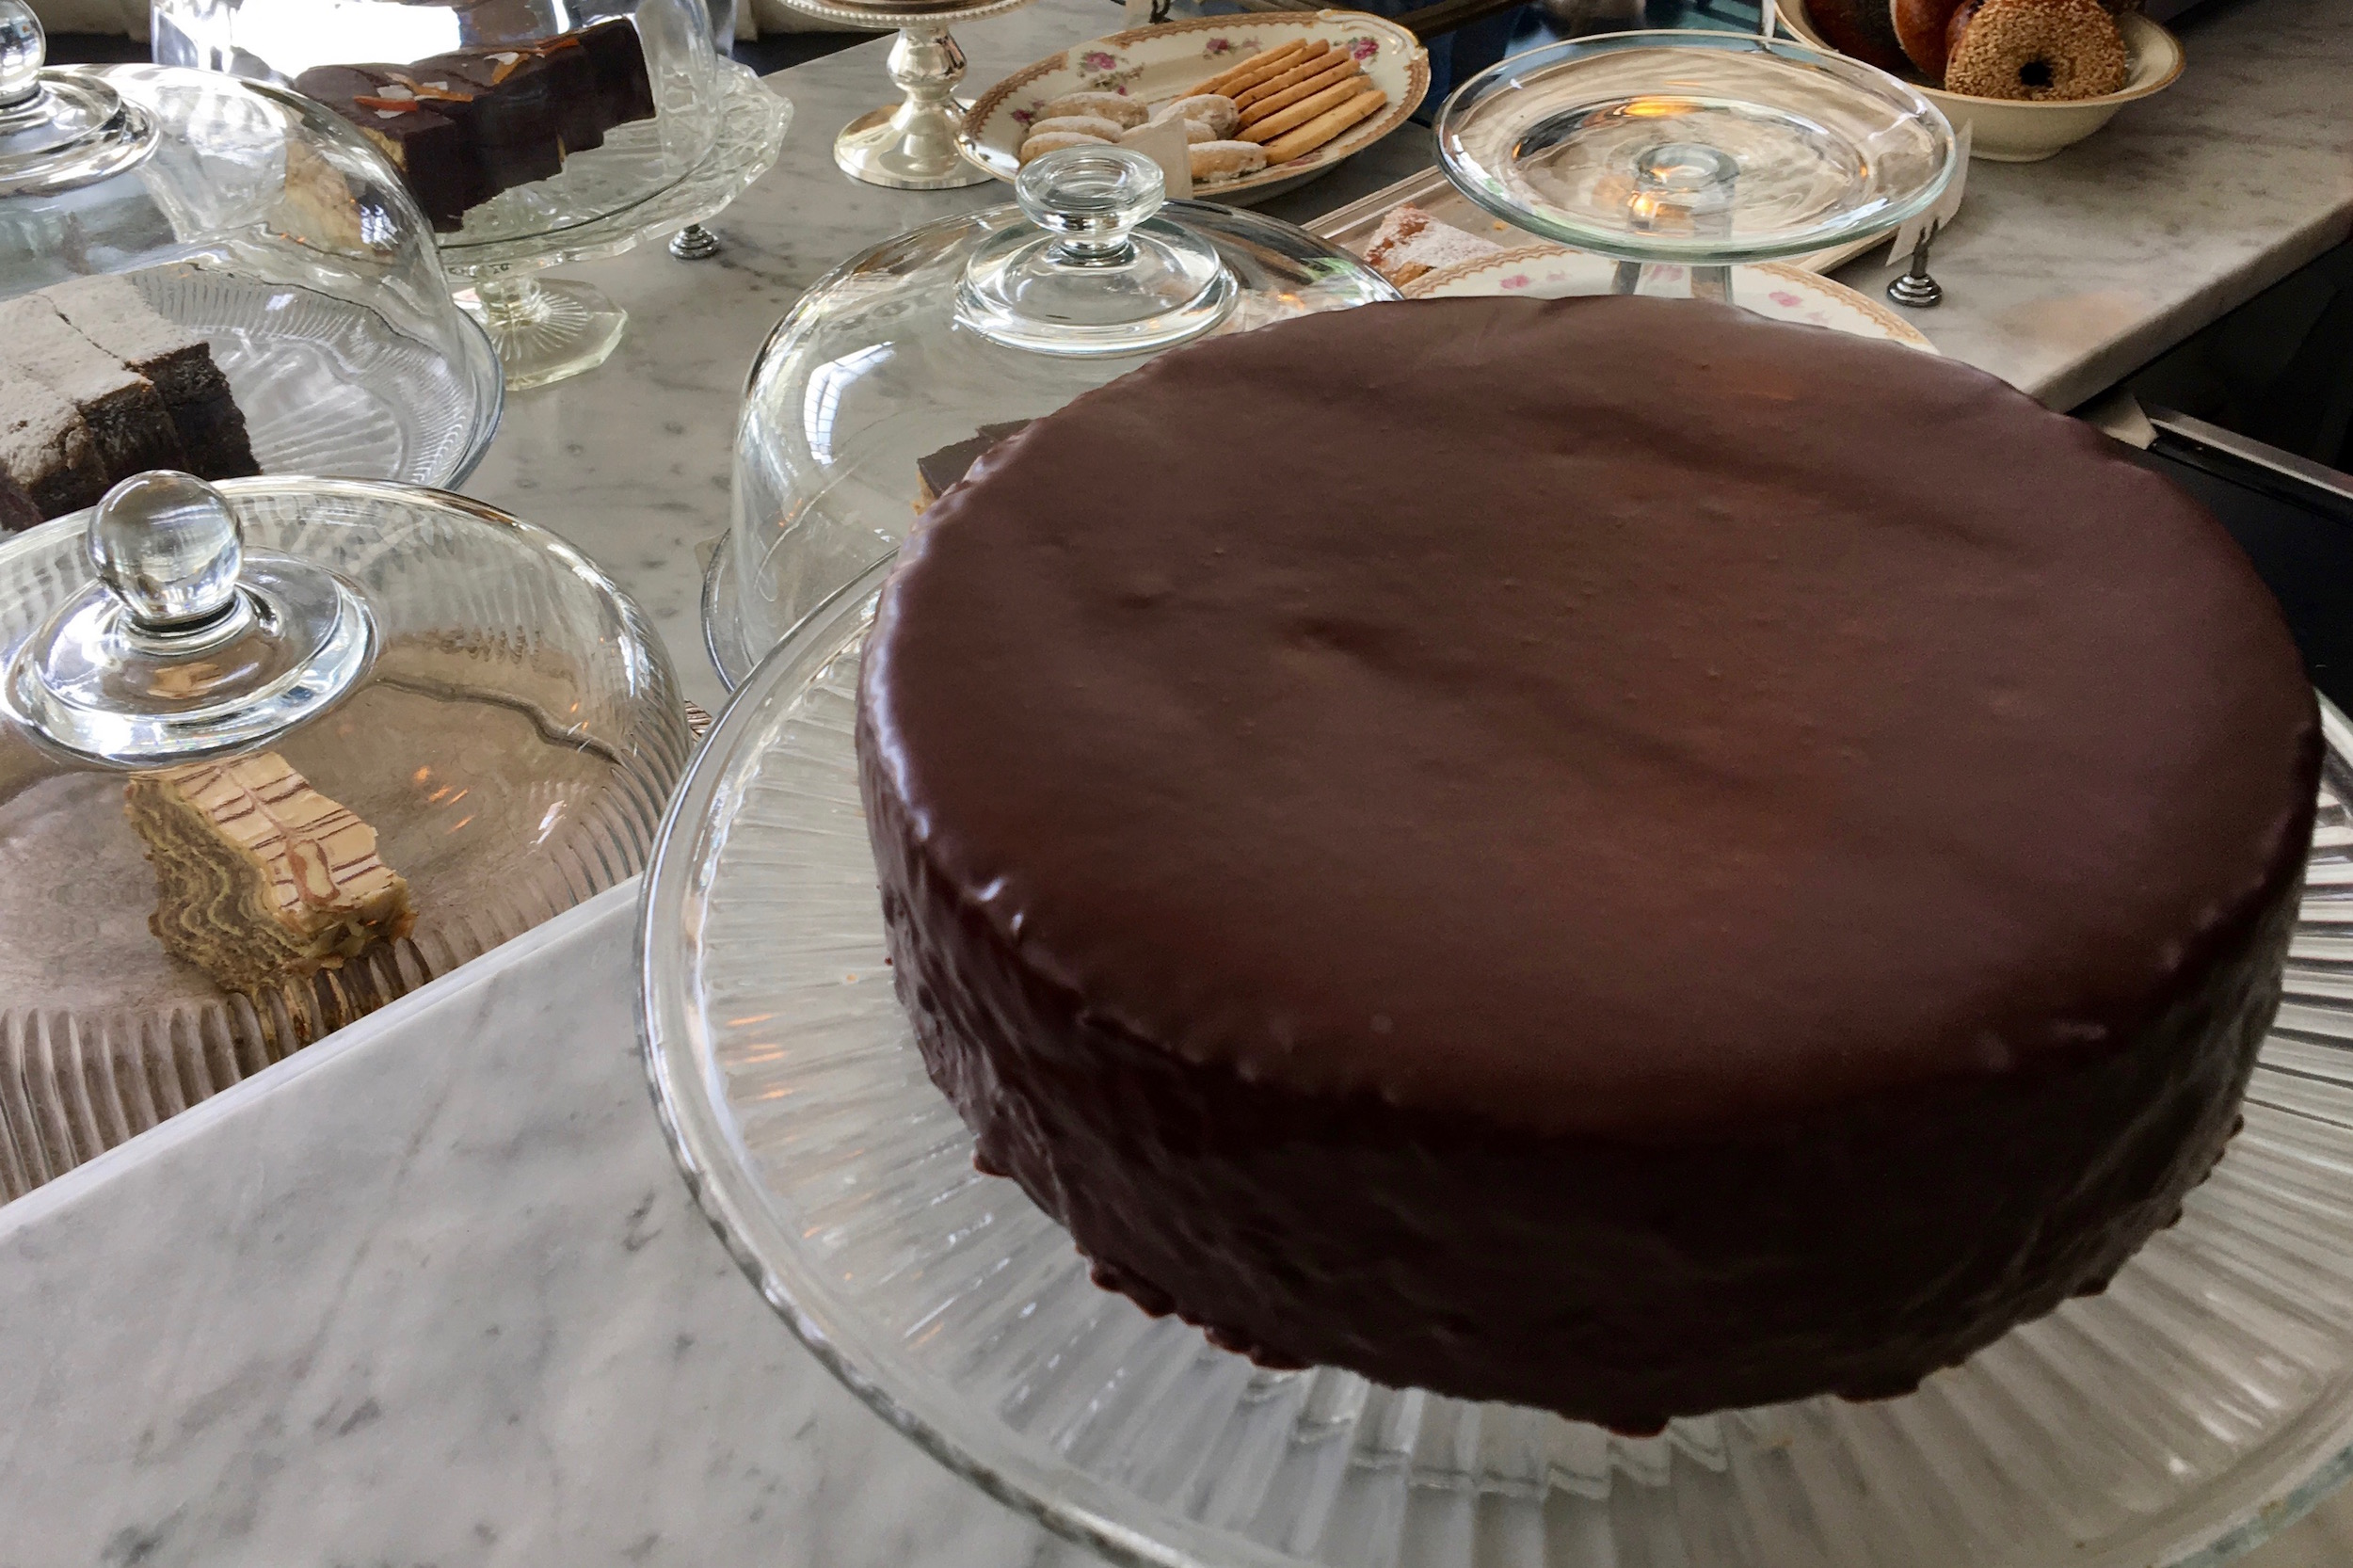 """yes! you may order a whole cake… - Many of our dessert favorites are also available wholesale. Please call the cafe during regular business hours to place an order:+1 (415) 621-2380Or for further enquiries, please send an email:20thcenturycafe@gmail.comround cakessacher torte two layers of chocolate made with almond flour, filled with royal blenheim apricot preserves and glazed with chocolate. serves 10-16. $75. dobos torte the most famous cake of hungaryseven layers of eastern european style cake with intense chocolate buttercream, topped with a fan of maldon salt flecked caramel. serves 18. $145.russian honey cake 9.5""""5-layer $65 serves 12-1610-layer $120 serves 16-24russian honey cake can be made as a tiered wedding cake. please inquire about pricing.rectangular cakes4"""" x 6"""